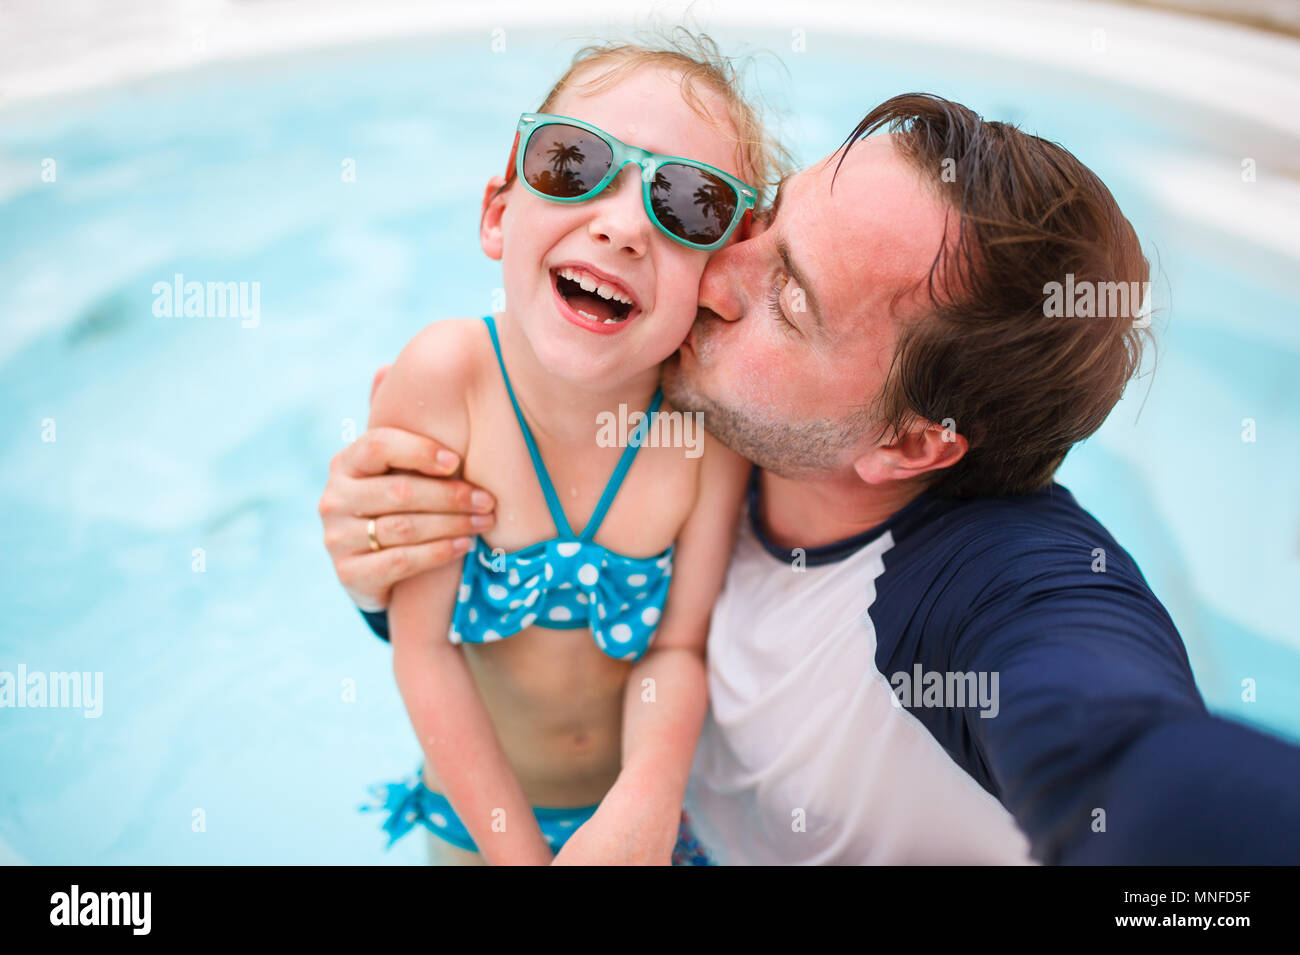 Happy family father and his adorable little daughter at outdoors swimming pool making selfie - Stock Image